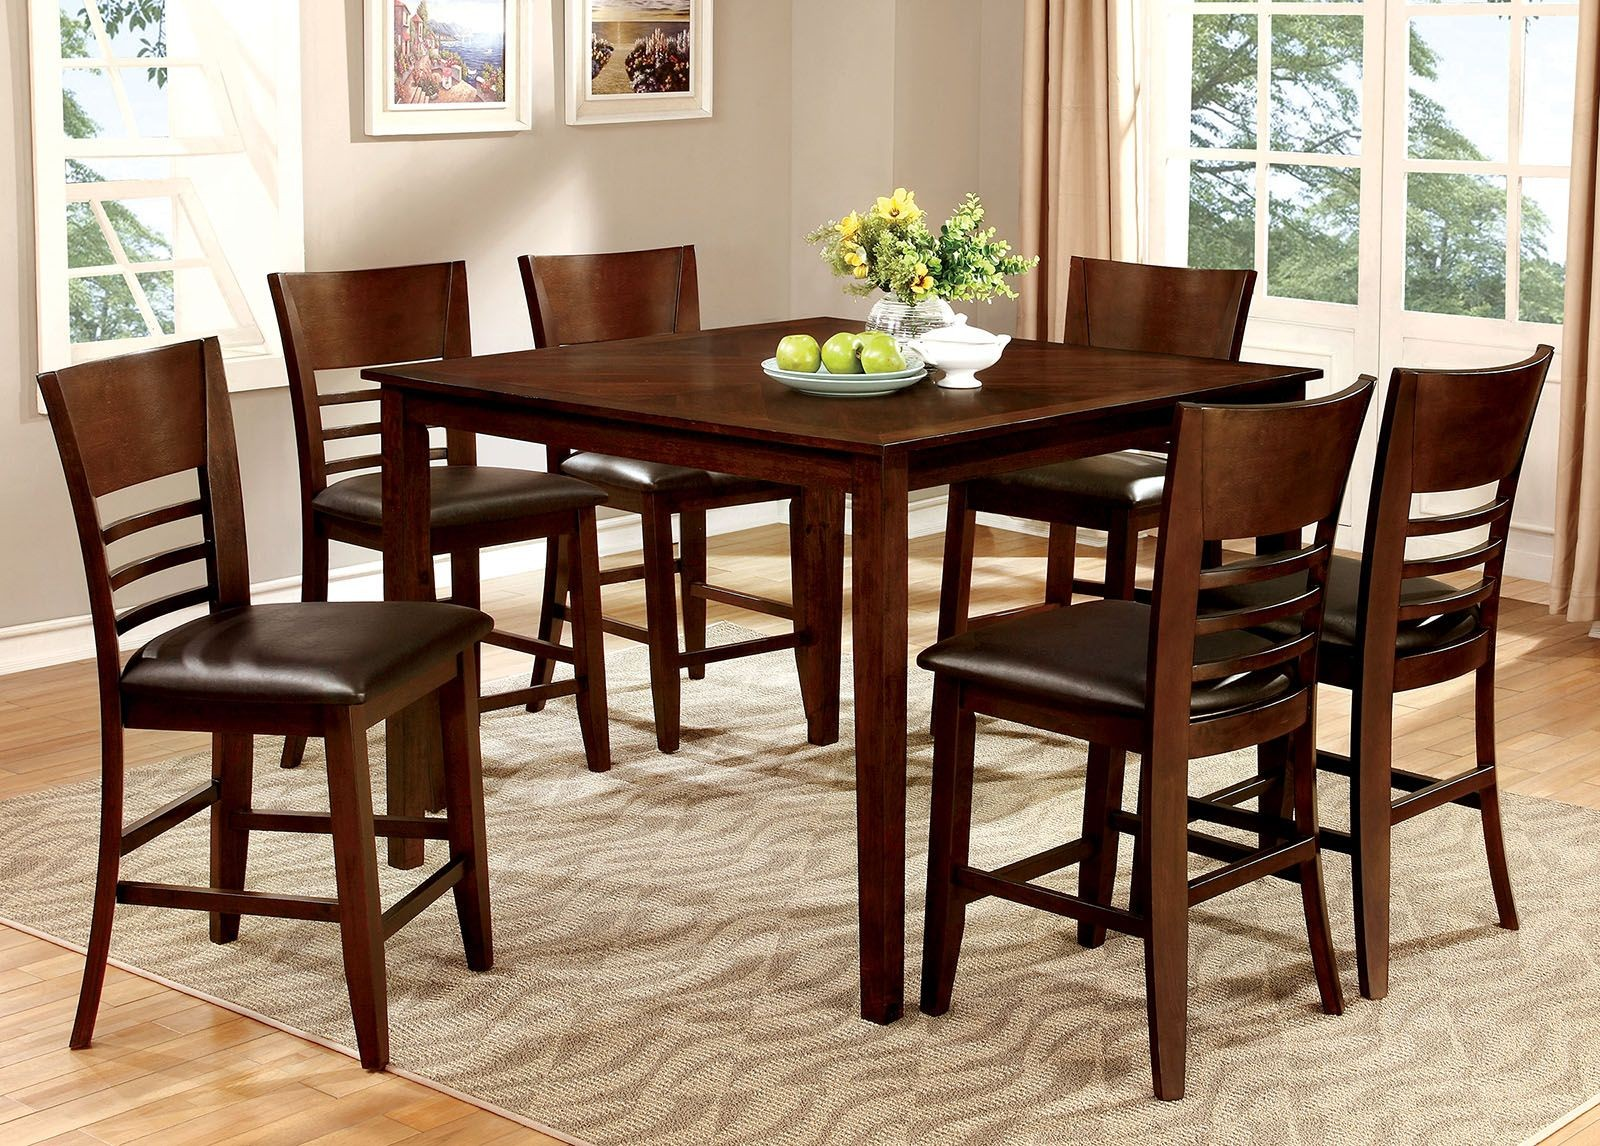 dining furniture b match products city coaster mix and value set height room counter item number sets piece